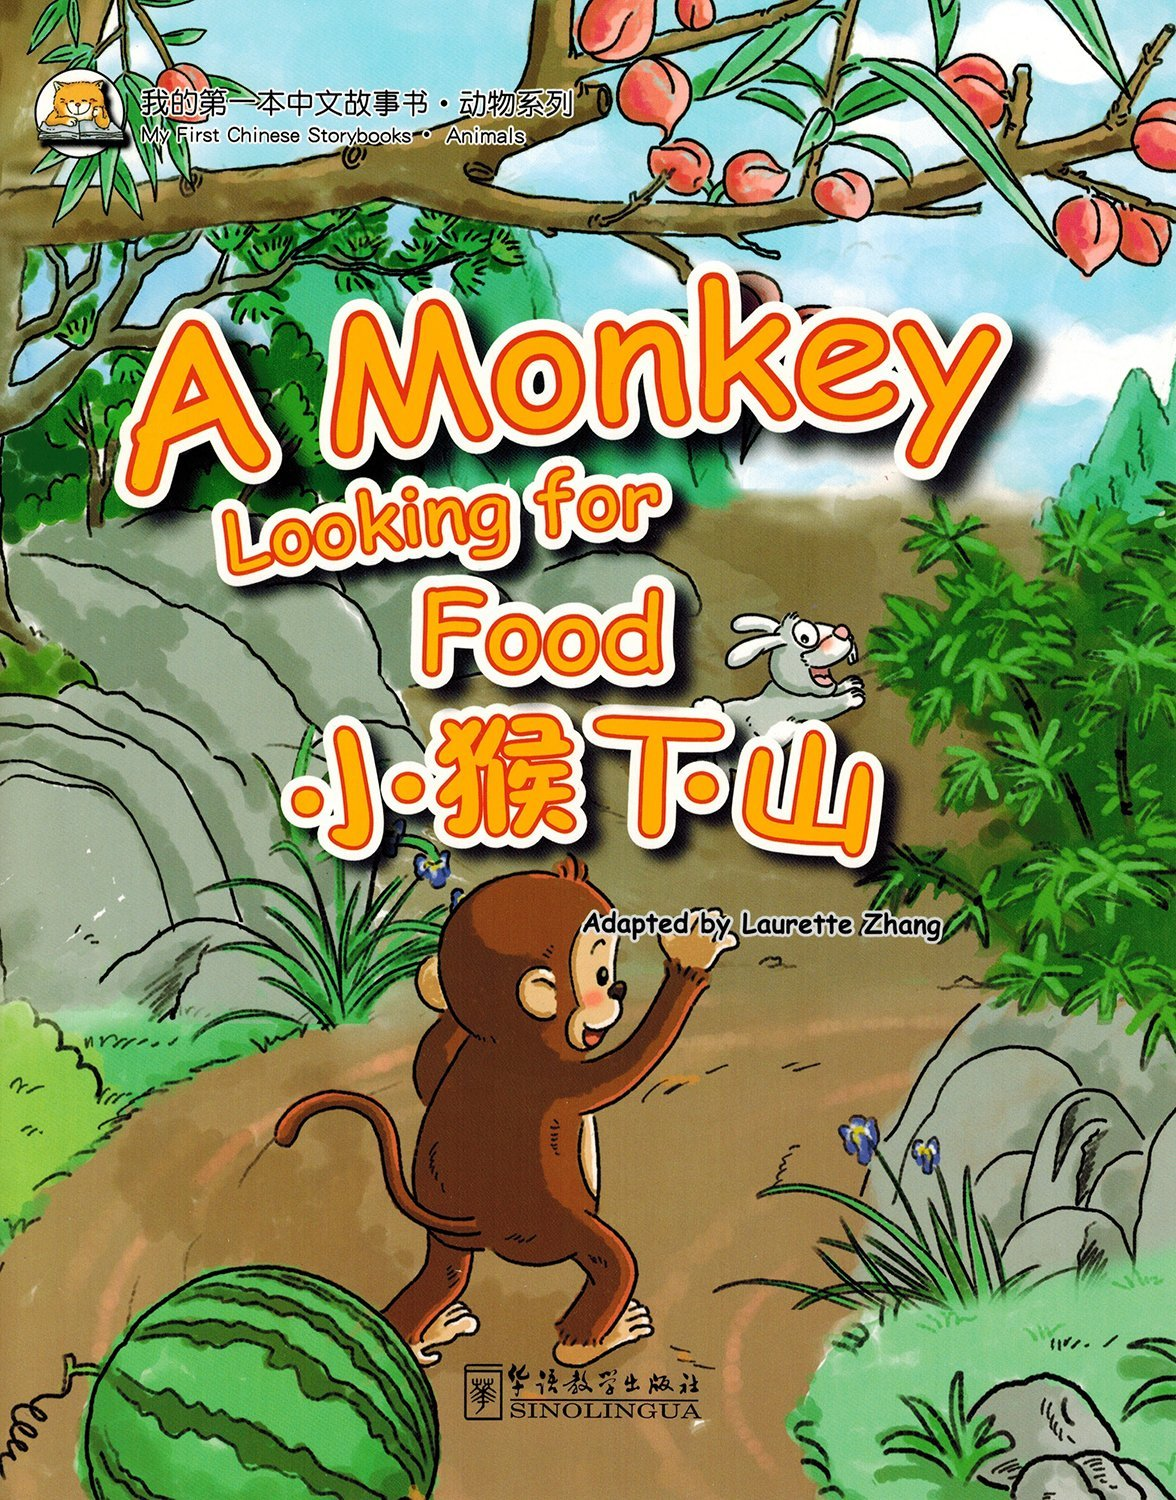 My First Chinese Storybooks: A Monkey Looking for Food (My First Chinese Storybooks Series) (English and Chinese Edition) PDF